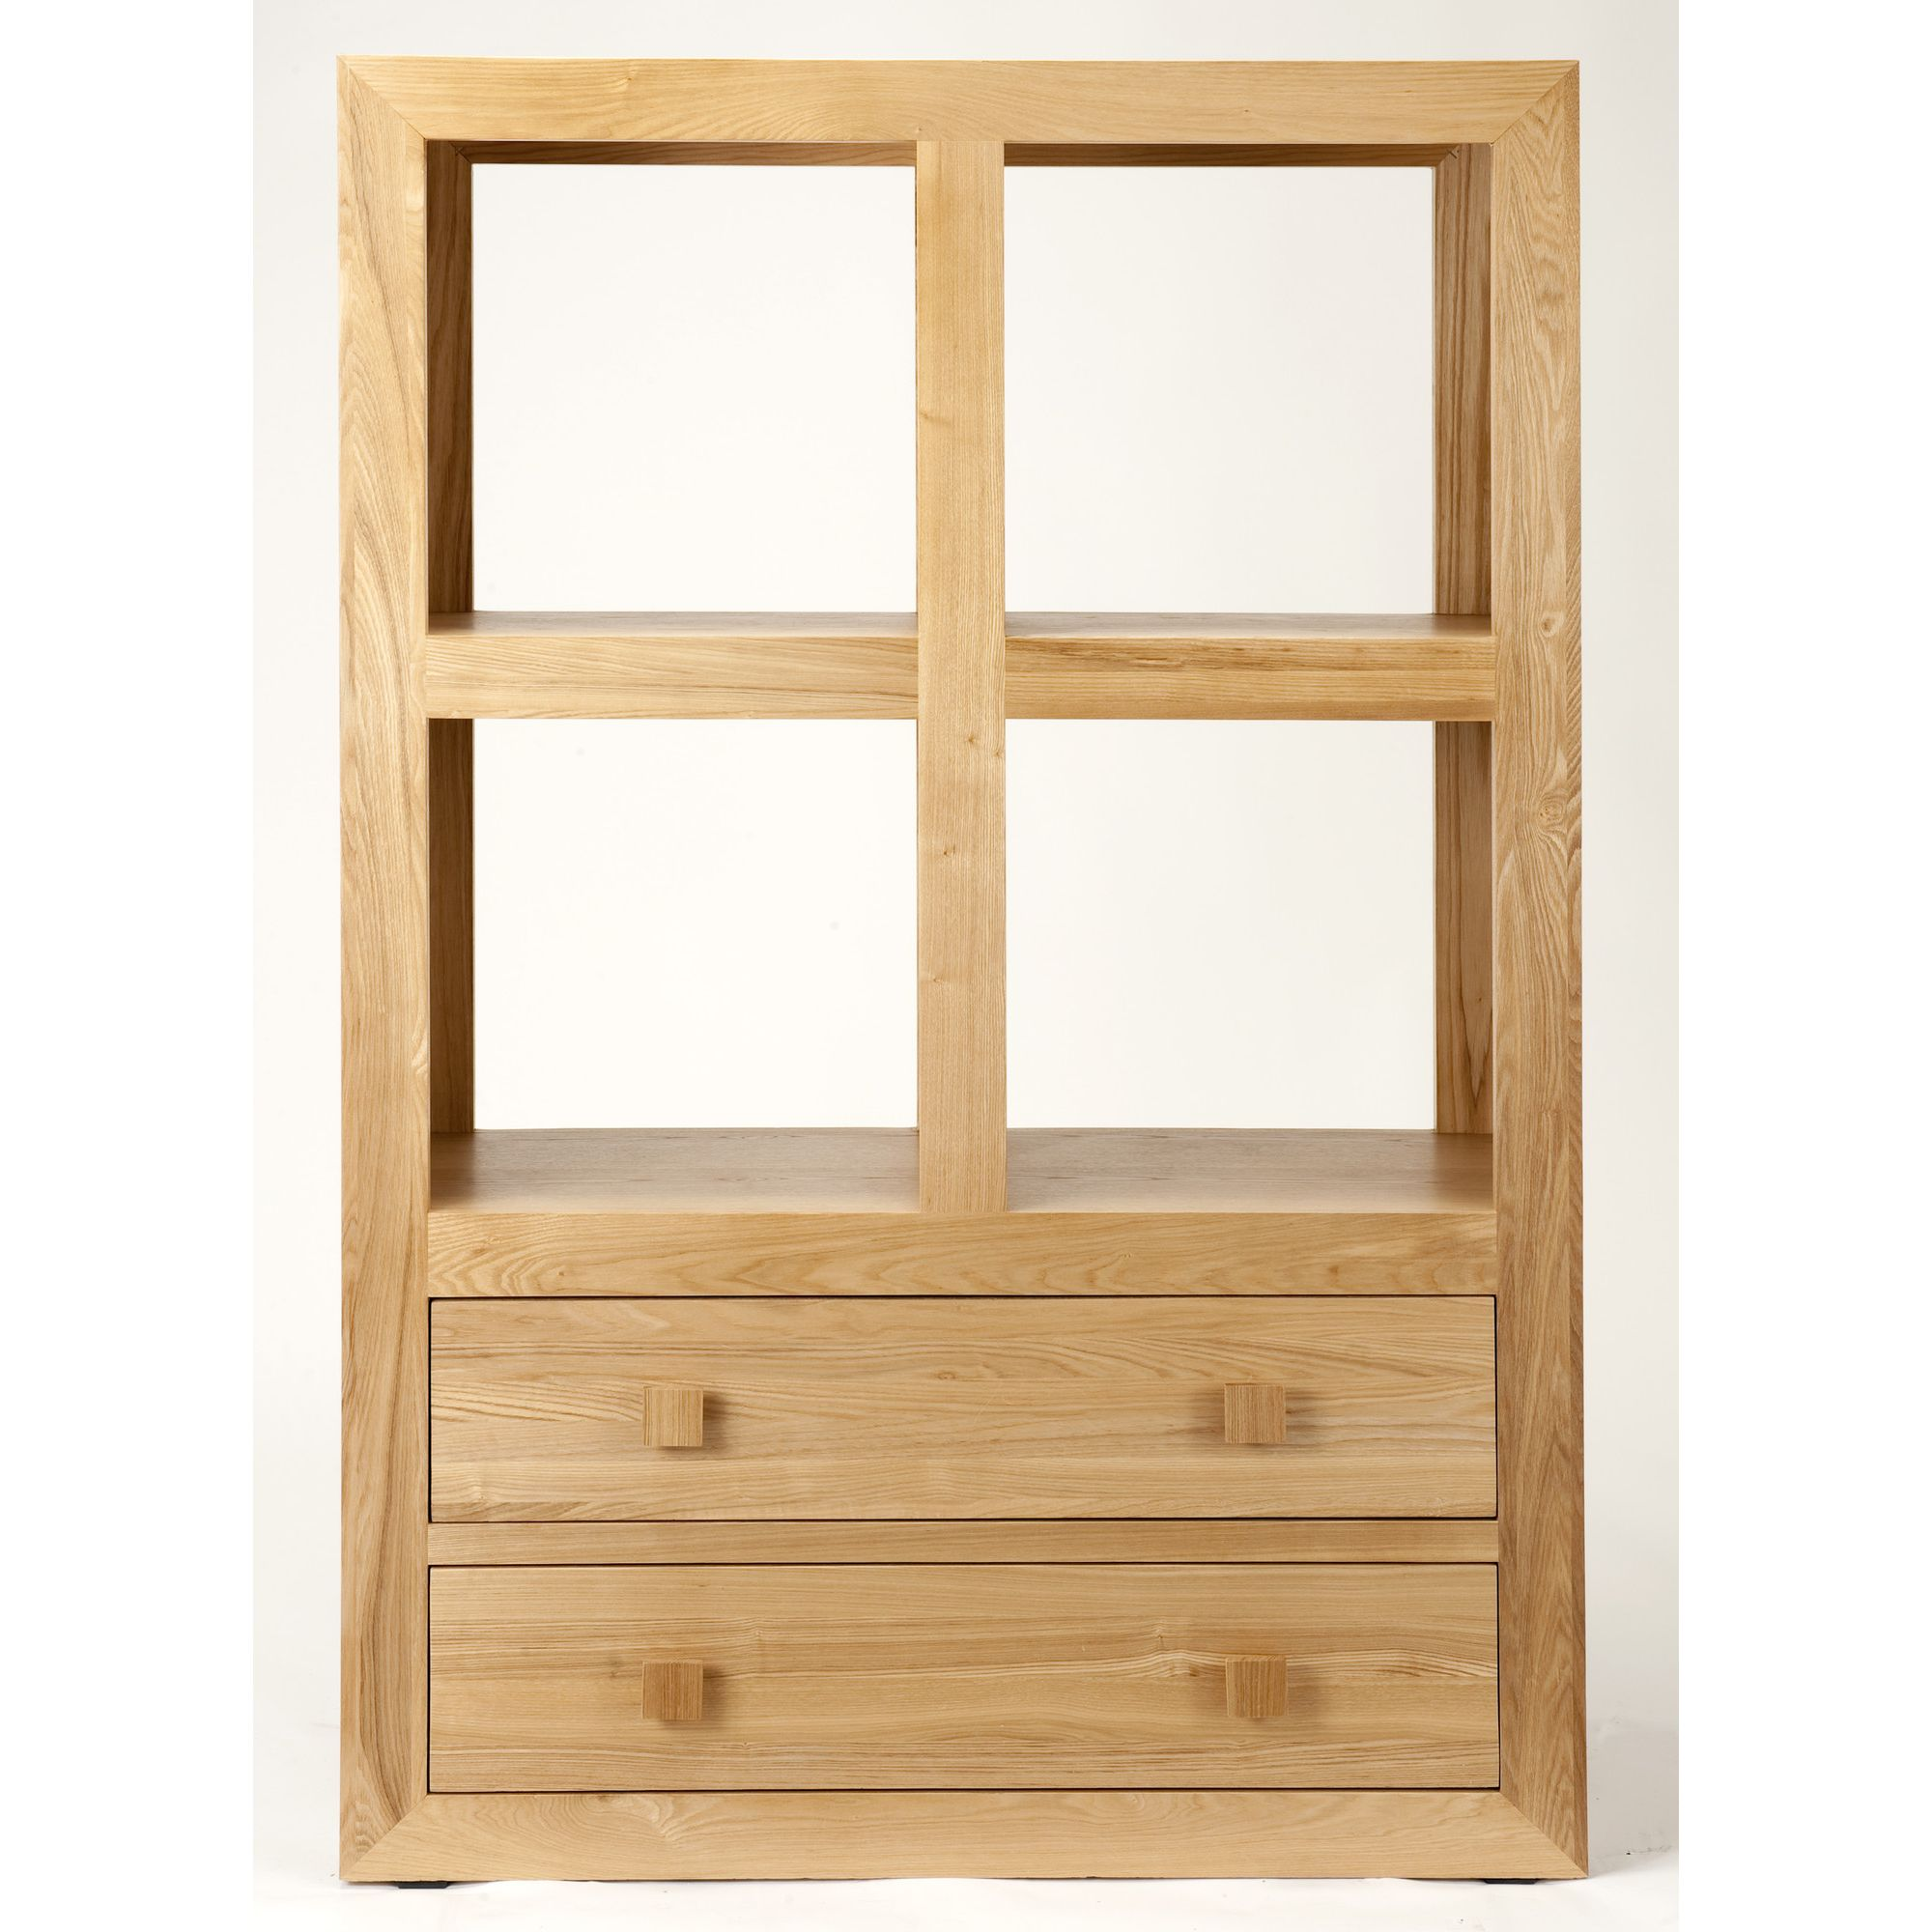 Originals UK Cubistic Dining Large Bookcase at Tesco Direct